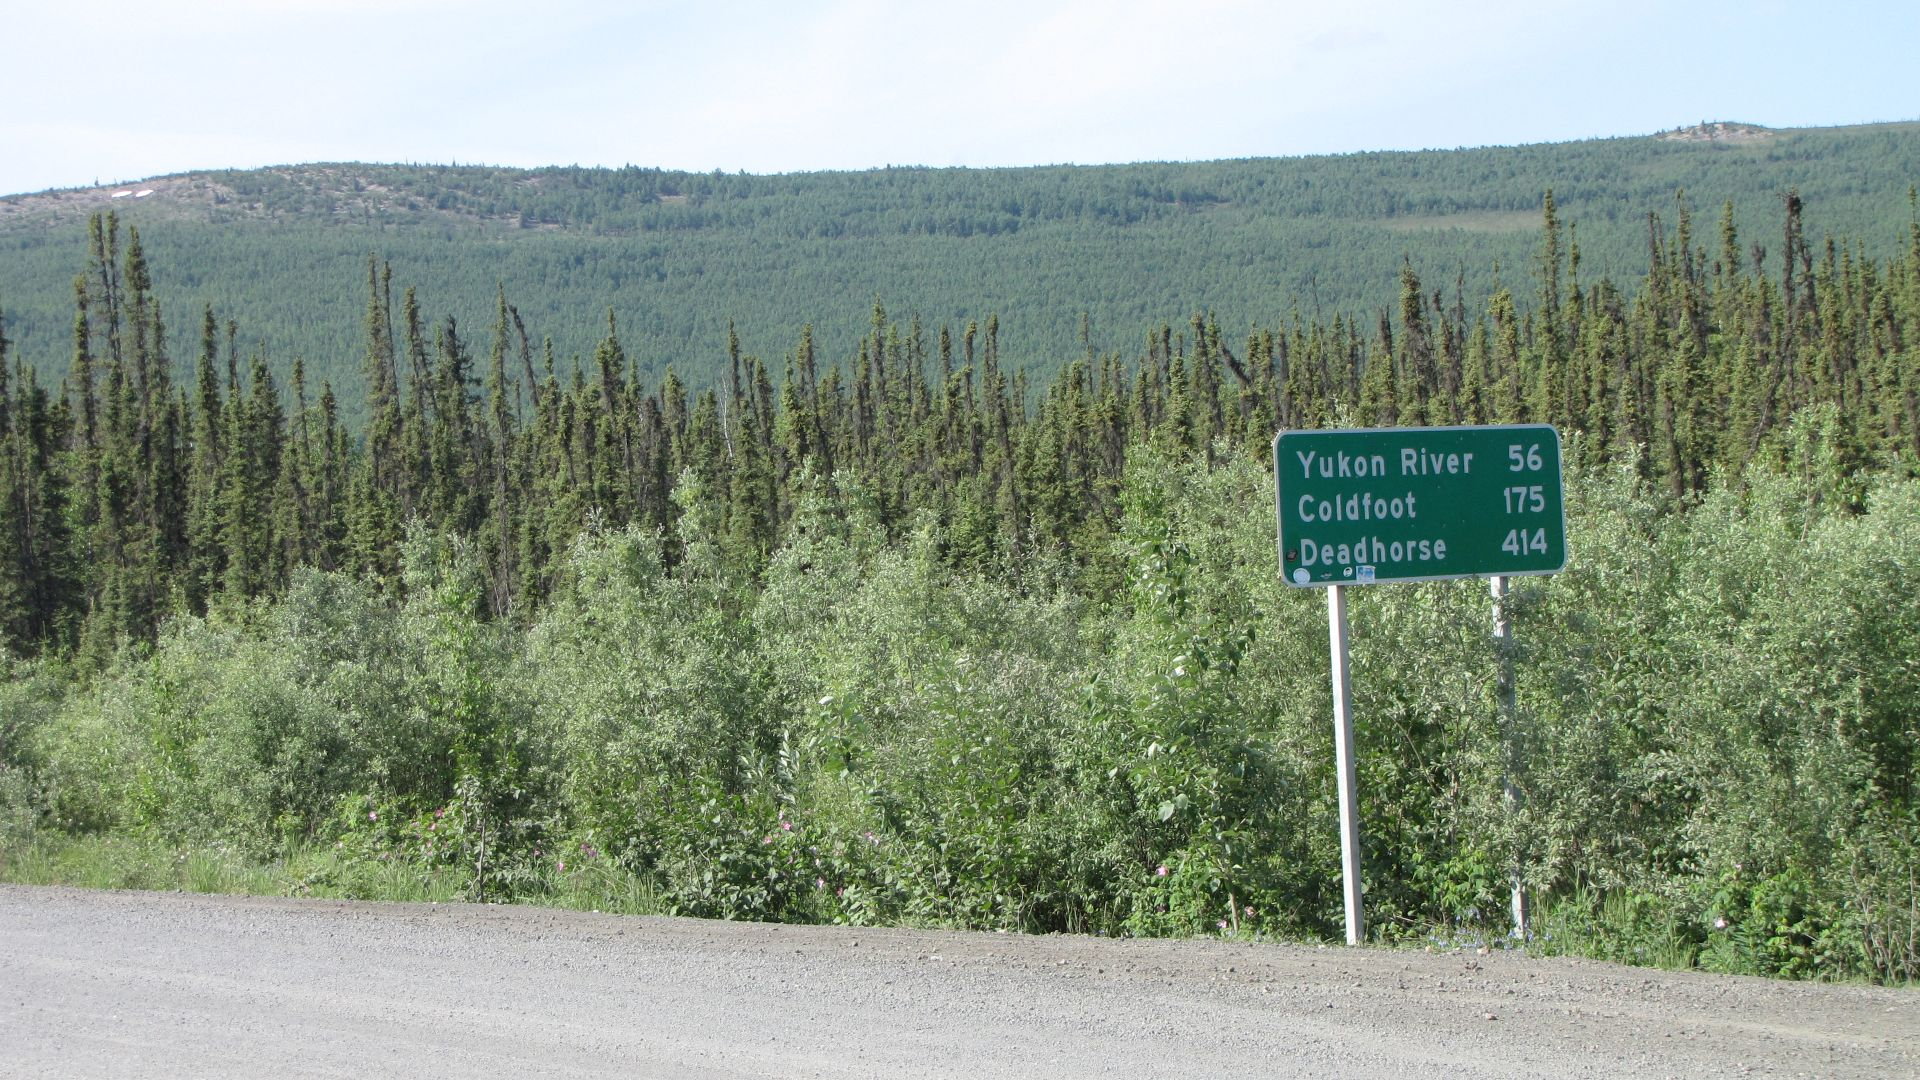 The last mile of the Dalton Highway - I was actually really sad to see the end of it, really!